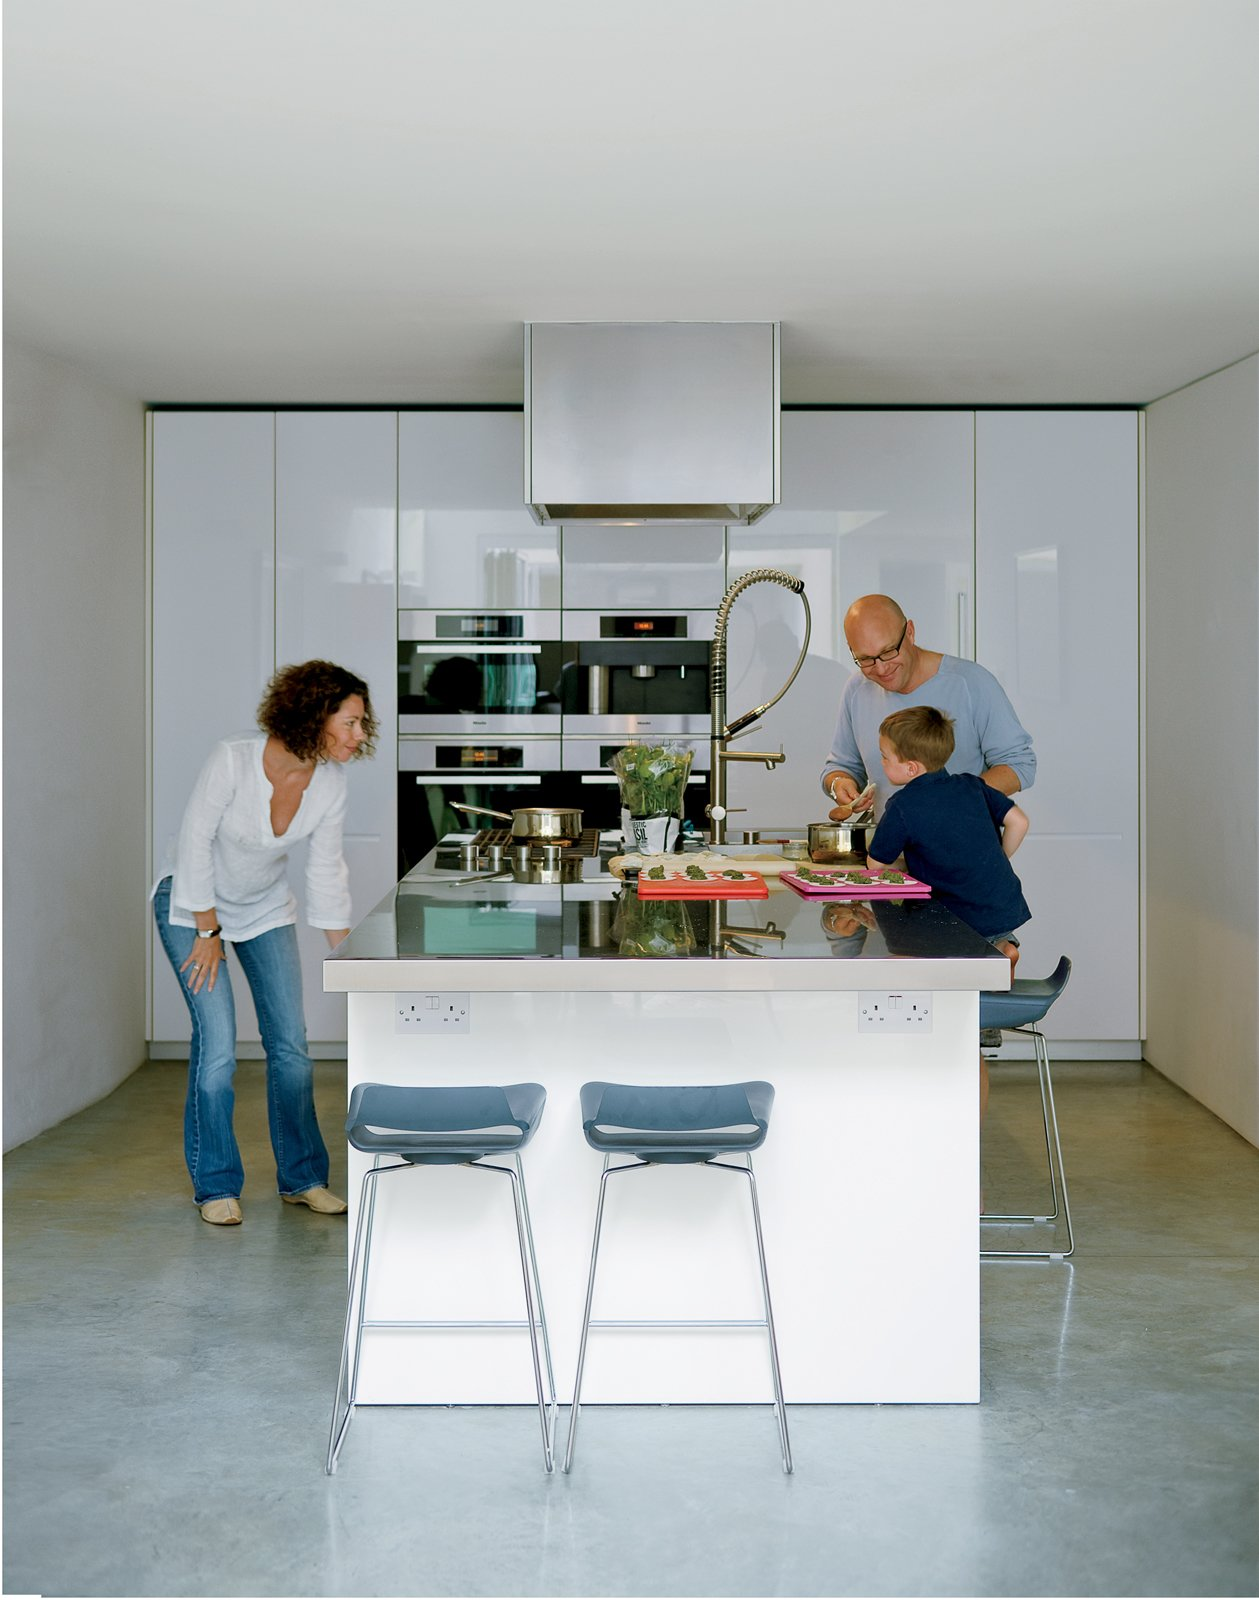 Kitchen, Wall Oven, and White Cabinet Bruce and Kirsty loved the idea of a kitchen island rather than traditional work surfaces around the walls. Bruce fancies himself a chef and hates to have his back to everyone when he's cooking. This island, from the Boffi LT line designed by Piero Lissoni, allows guests to gather around for impromptu sushi rolling or casual breakfasts.  Photo 5 of 10 in Composite Index